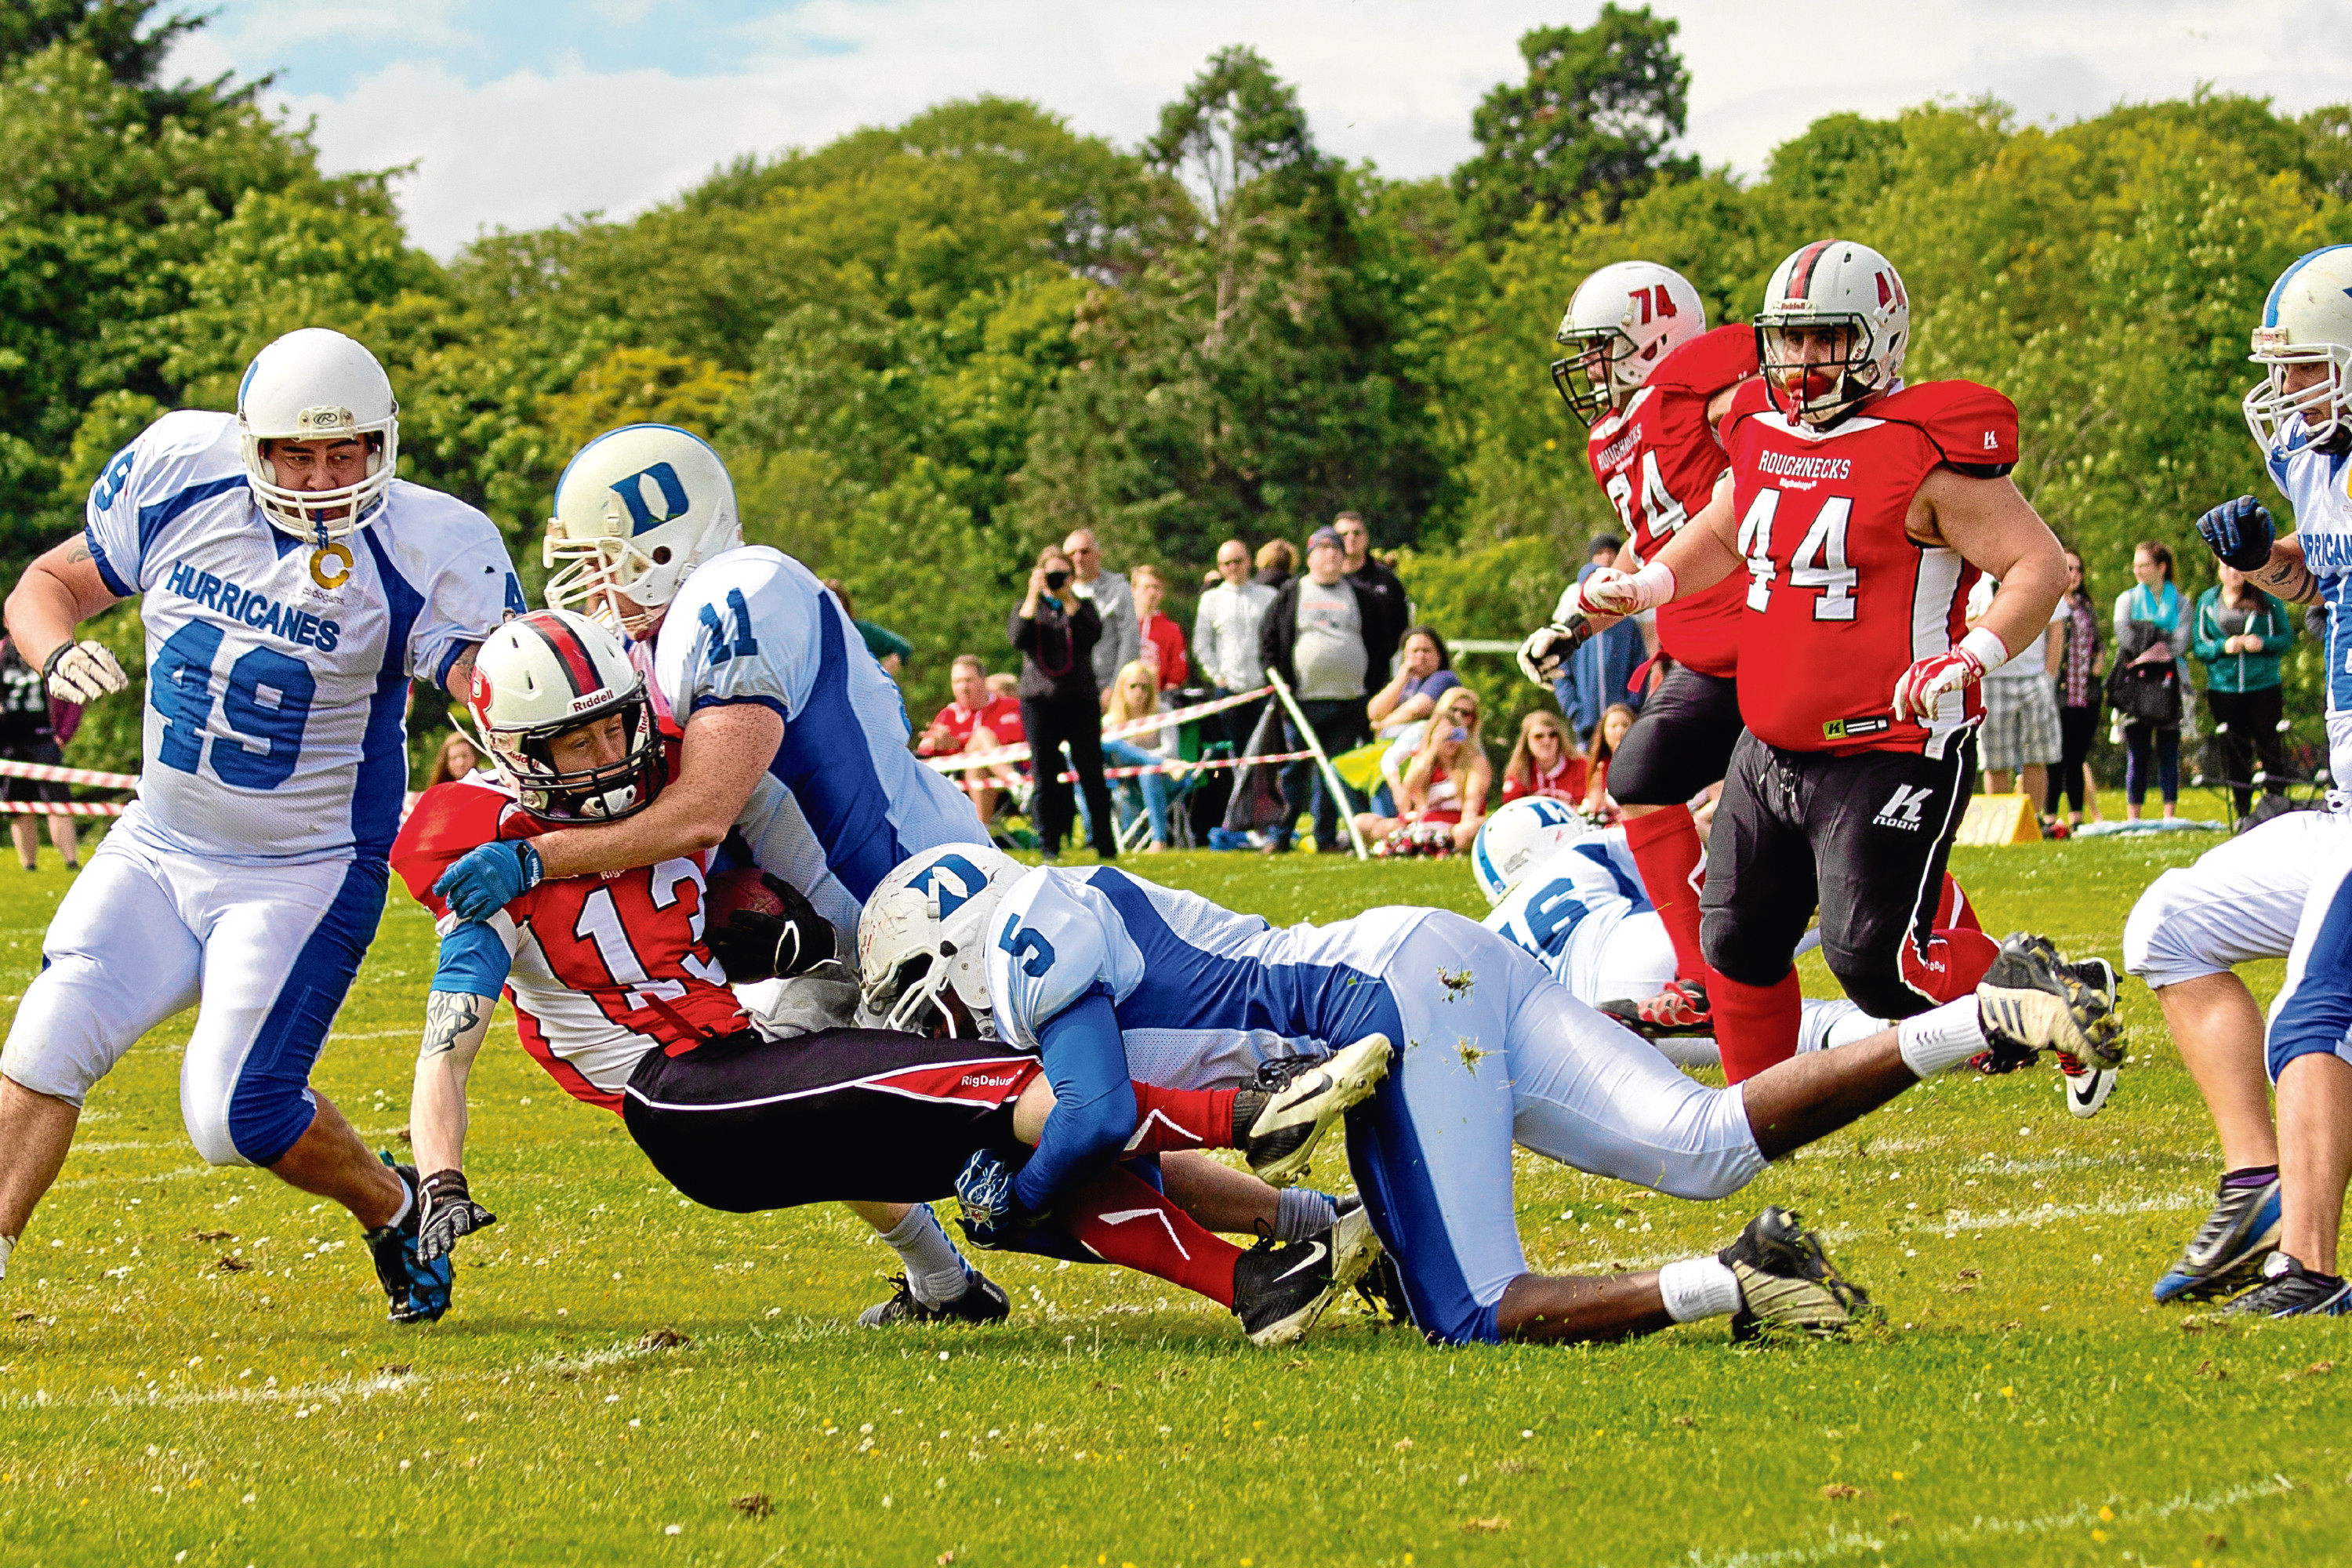 The Dundee Hurricanes in action during one of their games.